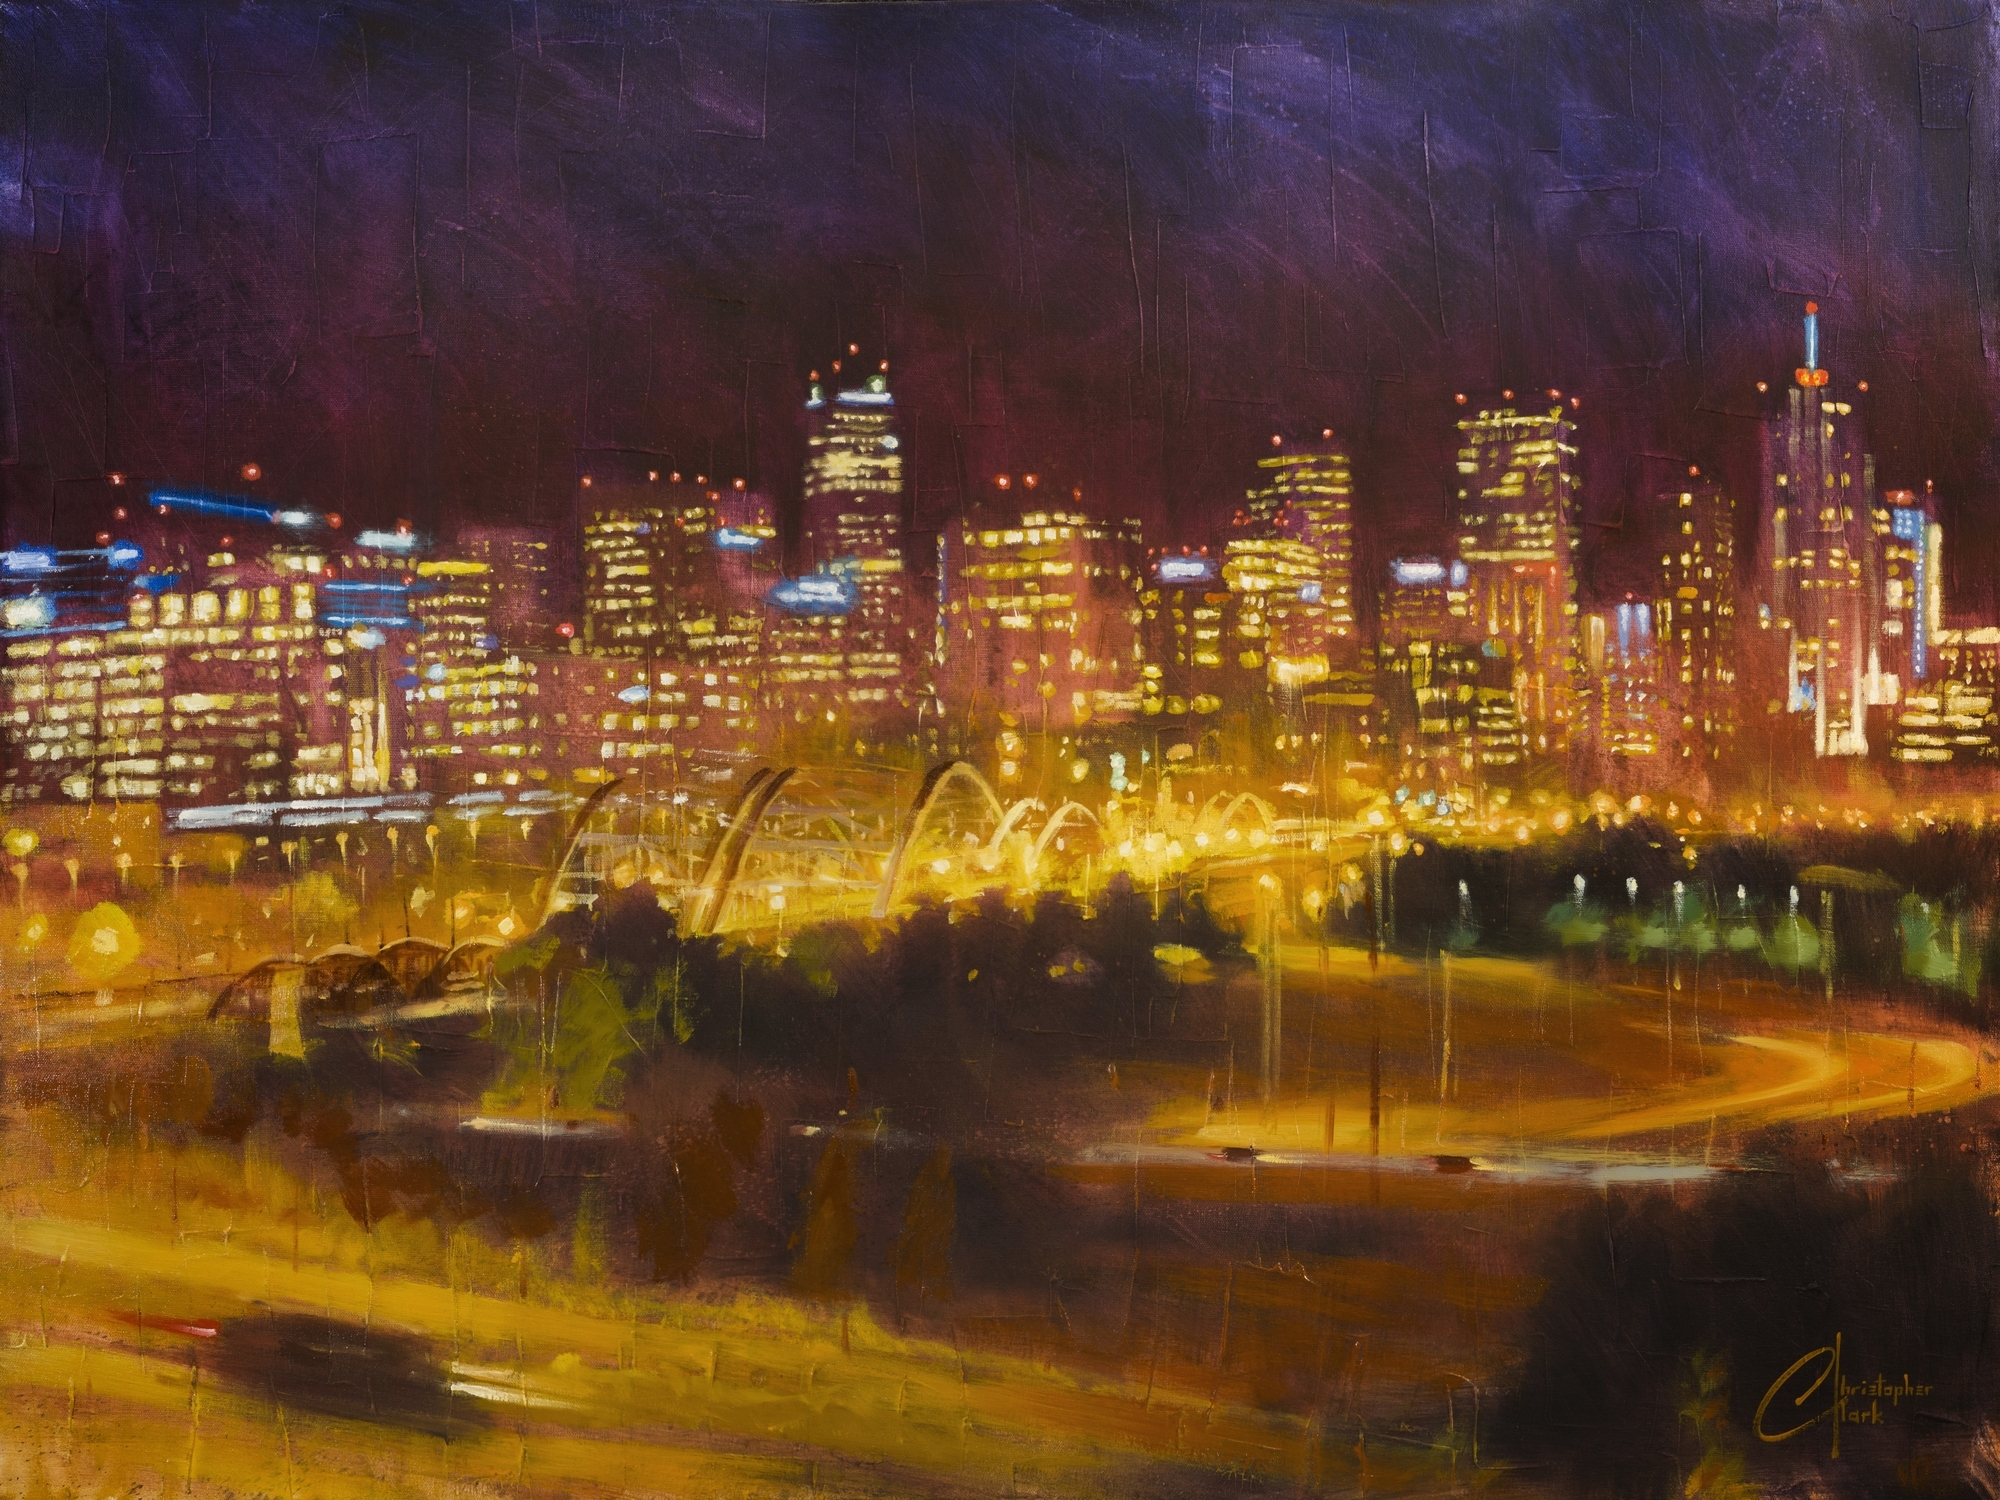 Denver Skyline from Speer and 23rd Ave at Night by Christopher Clark